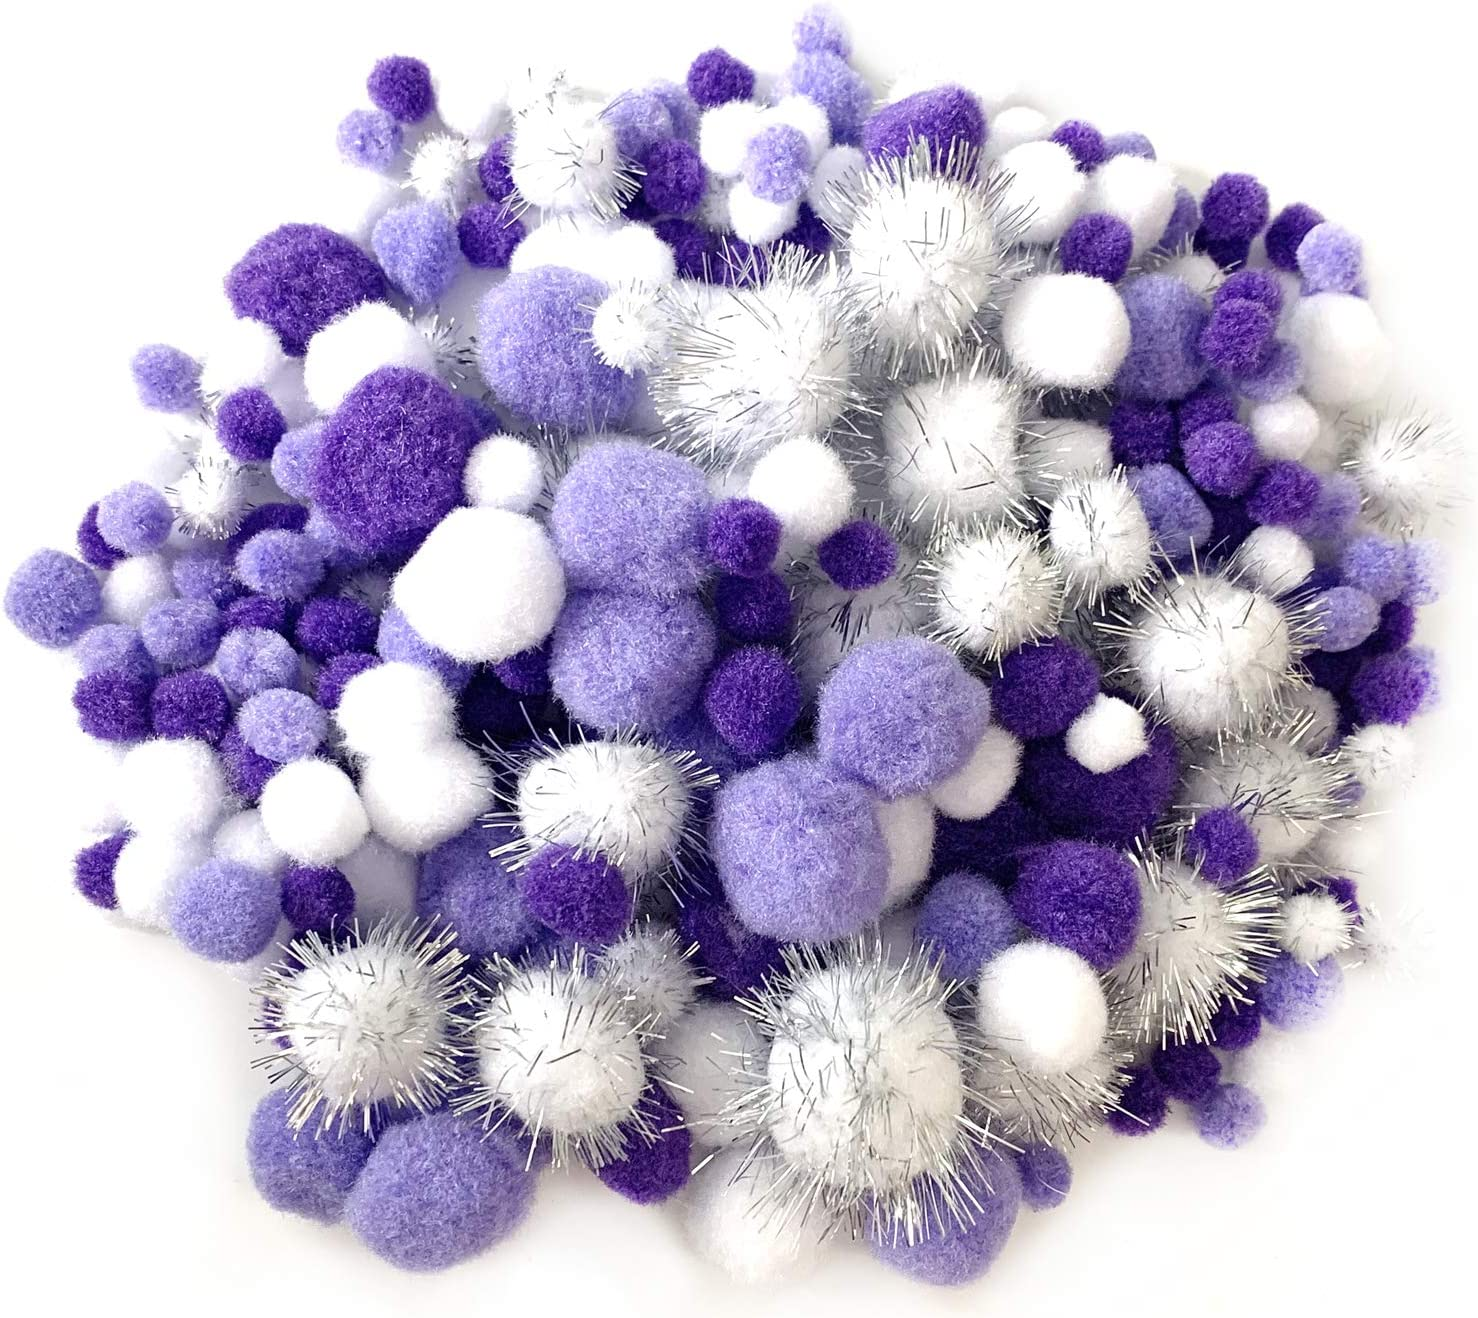 Wartoon Pipe Cleaners Chenille Stem and Pompoms with Googly Wiggle Eyes for Craft DIY Art Supplies 500 Pieces Pipe Cleaners Crafts Set